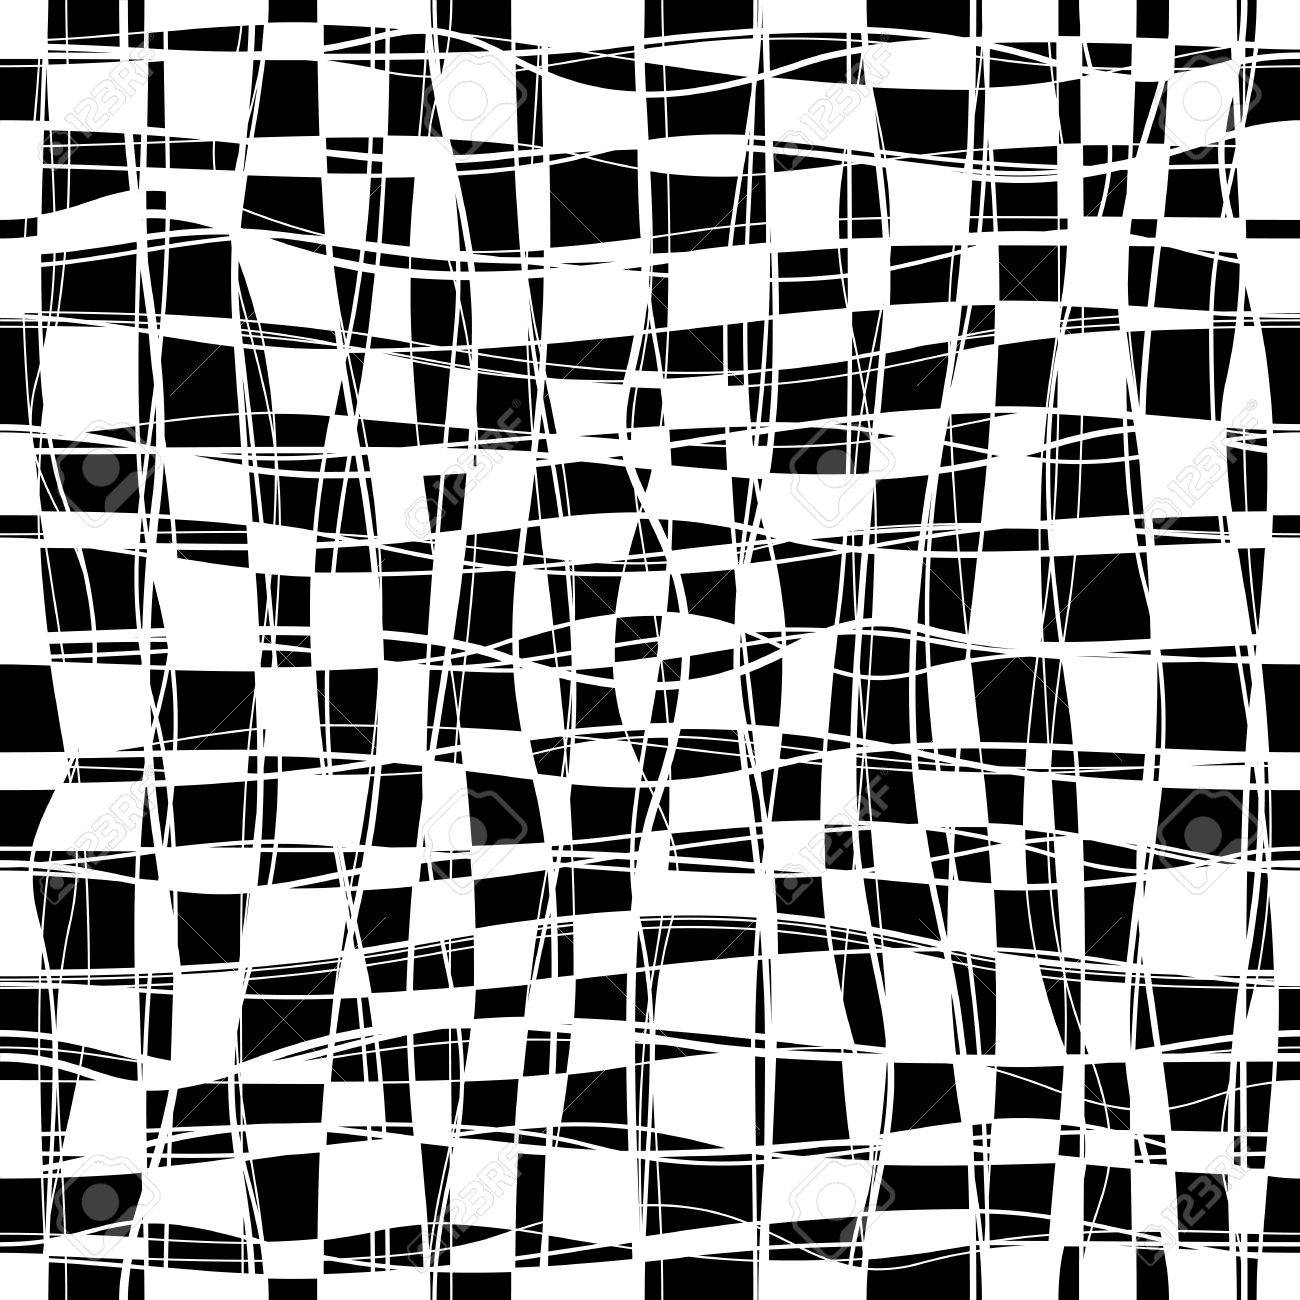 Seamless black and white checkered texture stock images image - Black And White Checker Chess Seamless Pattern Stock Vector 39306883